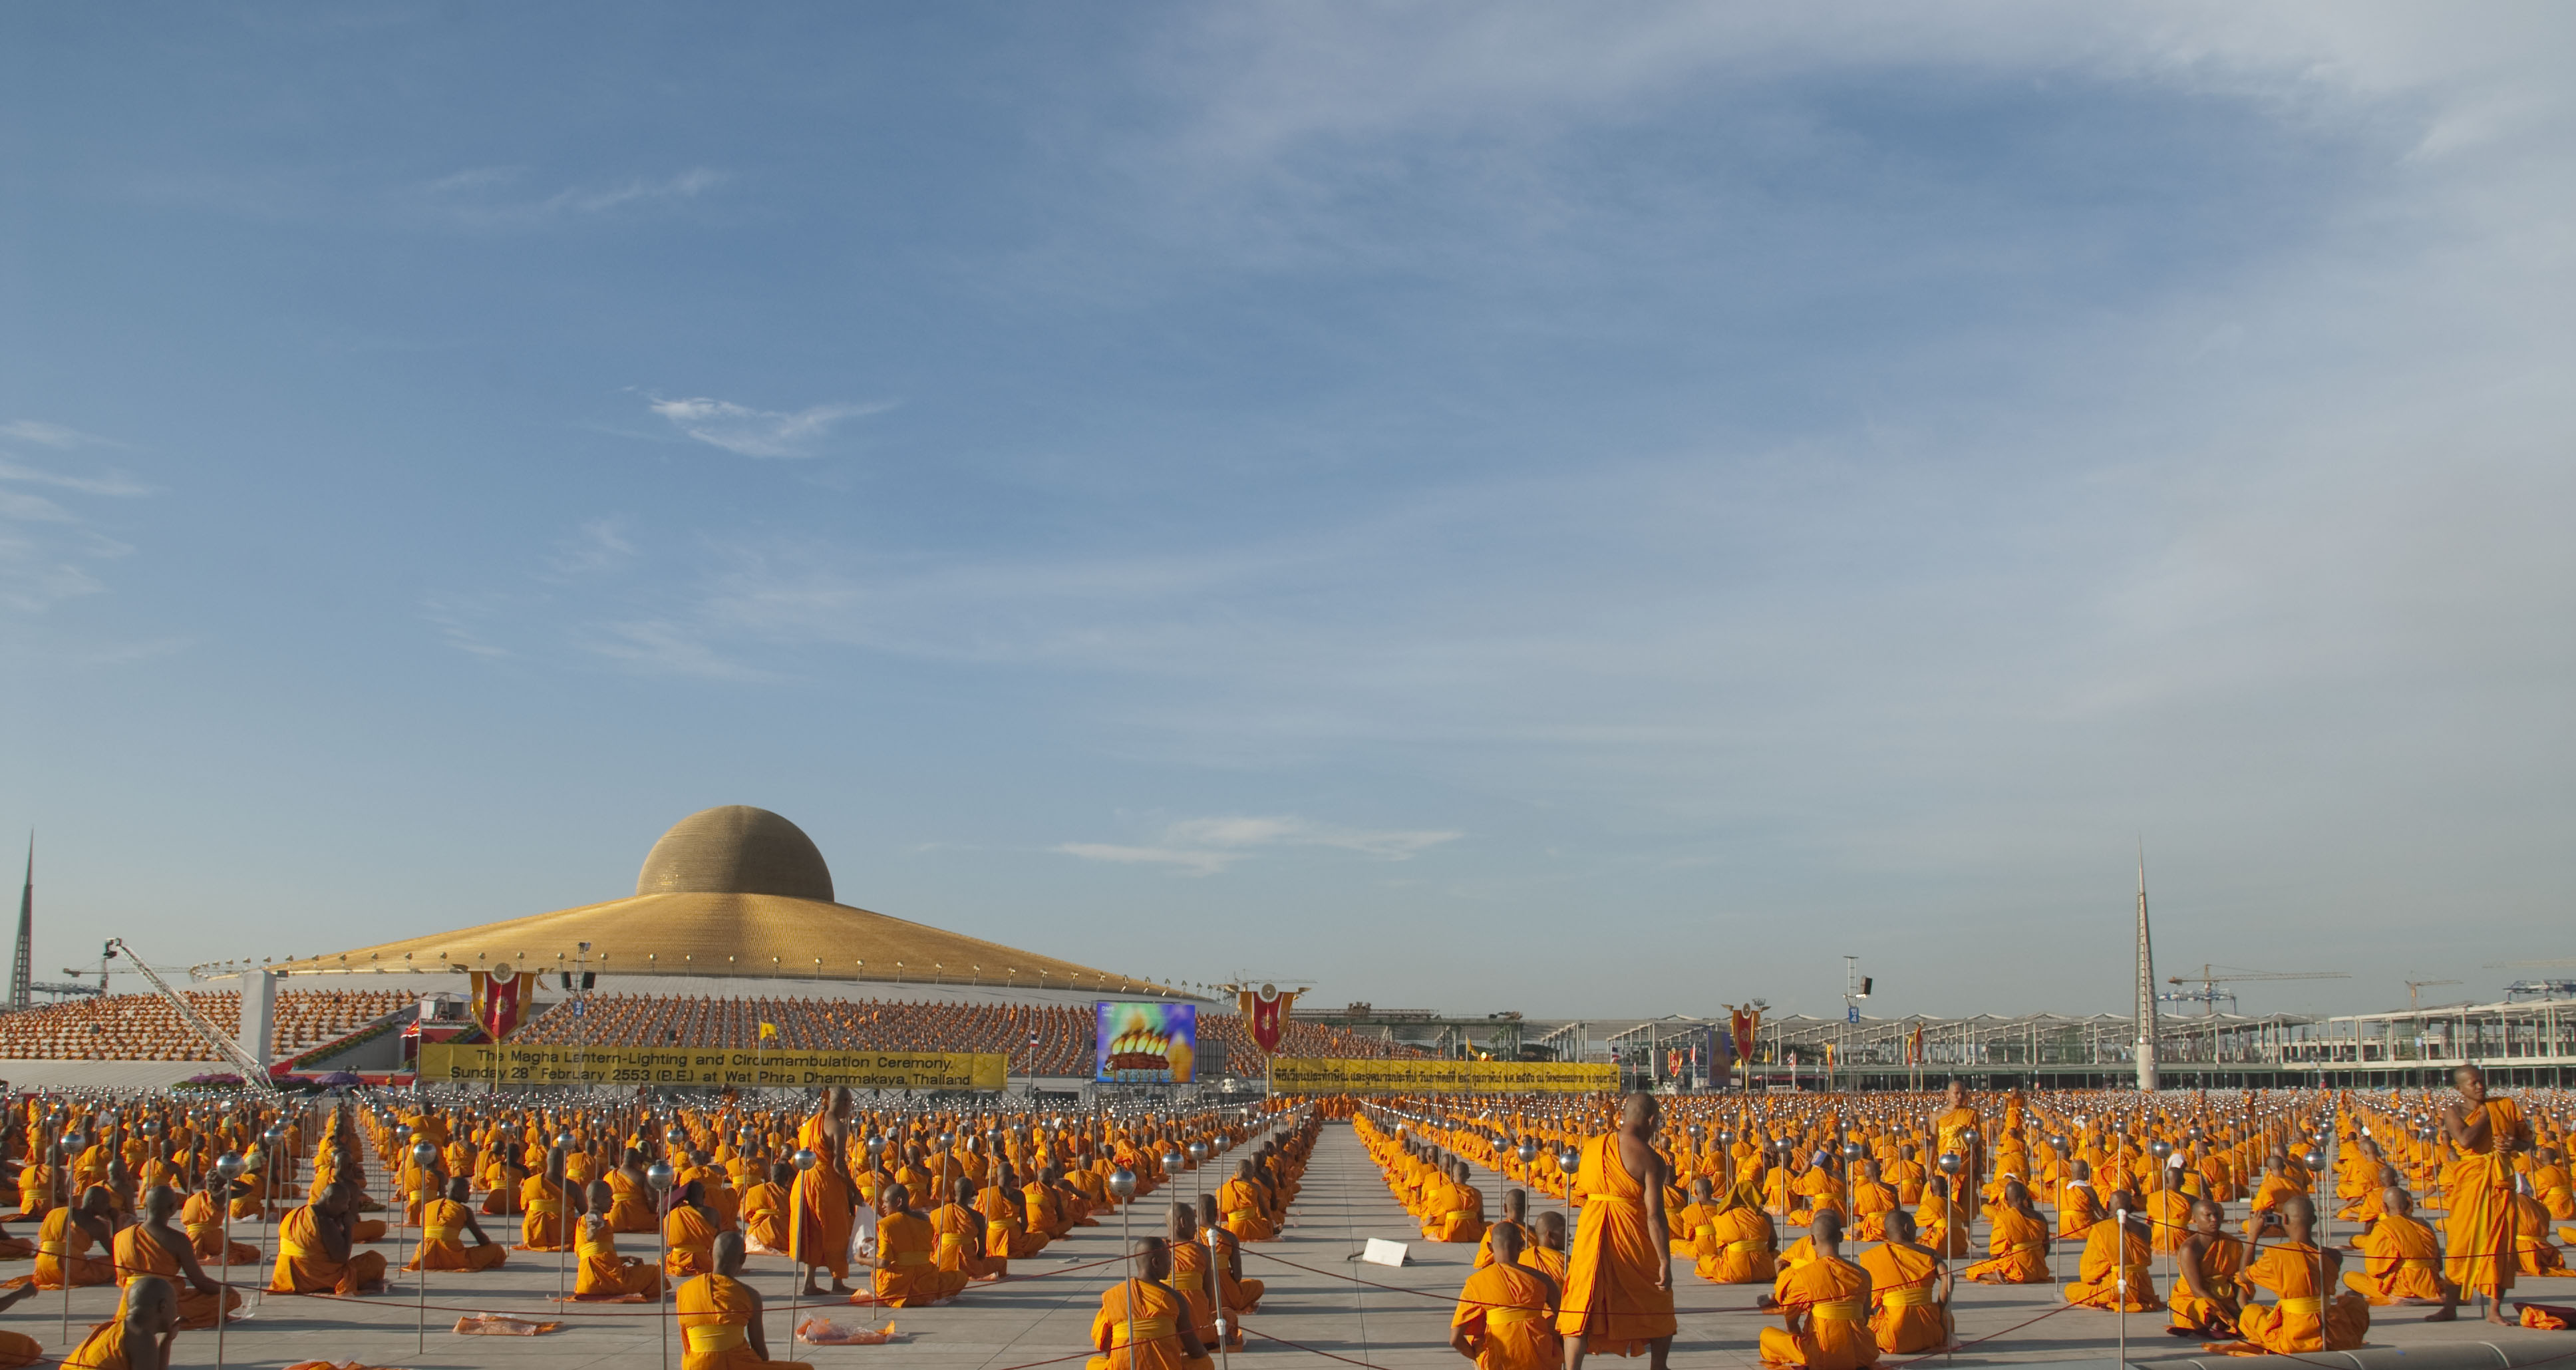 Monks and guests from over 40 countries joyously attend the Makha Bucha Day ceremony at Wat Phra Dhammakaya in Thailand, offering alms to 3,000 monks and lighting 100,000 lanterns in